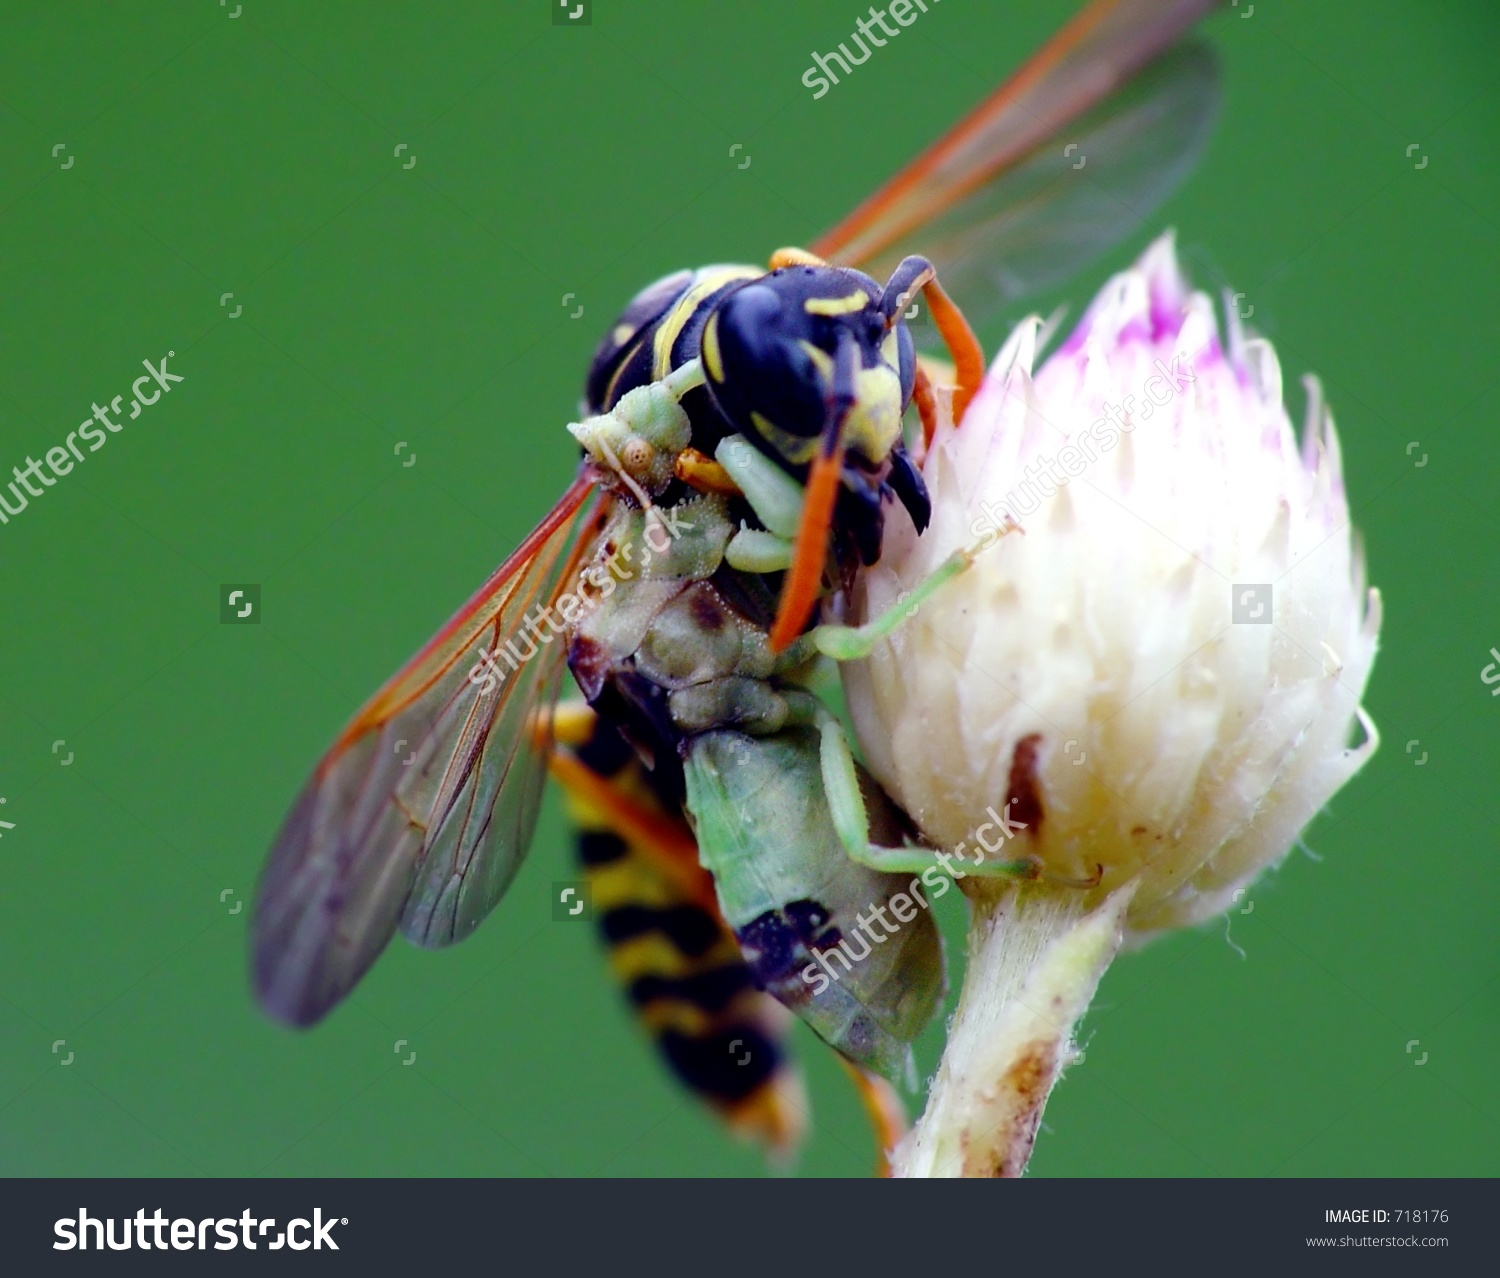 Assassin Bug Eating A Wasp Stock Photo 718176 : Shutterstock.